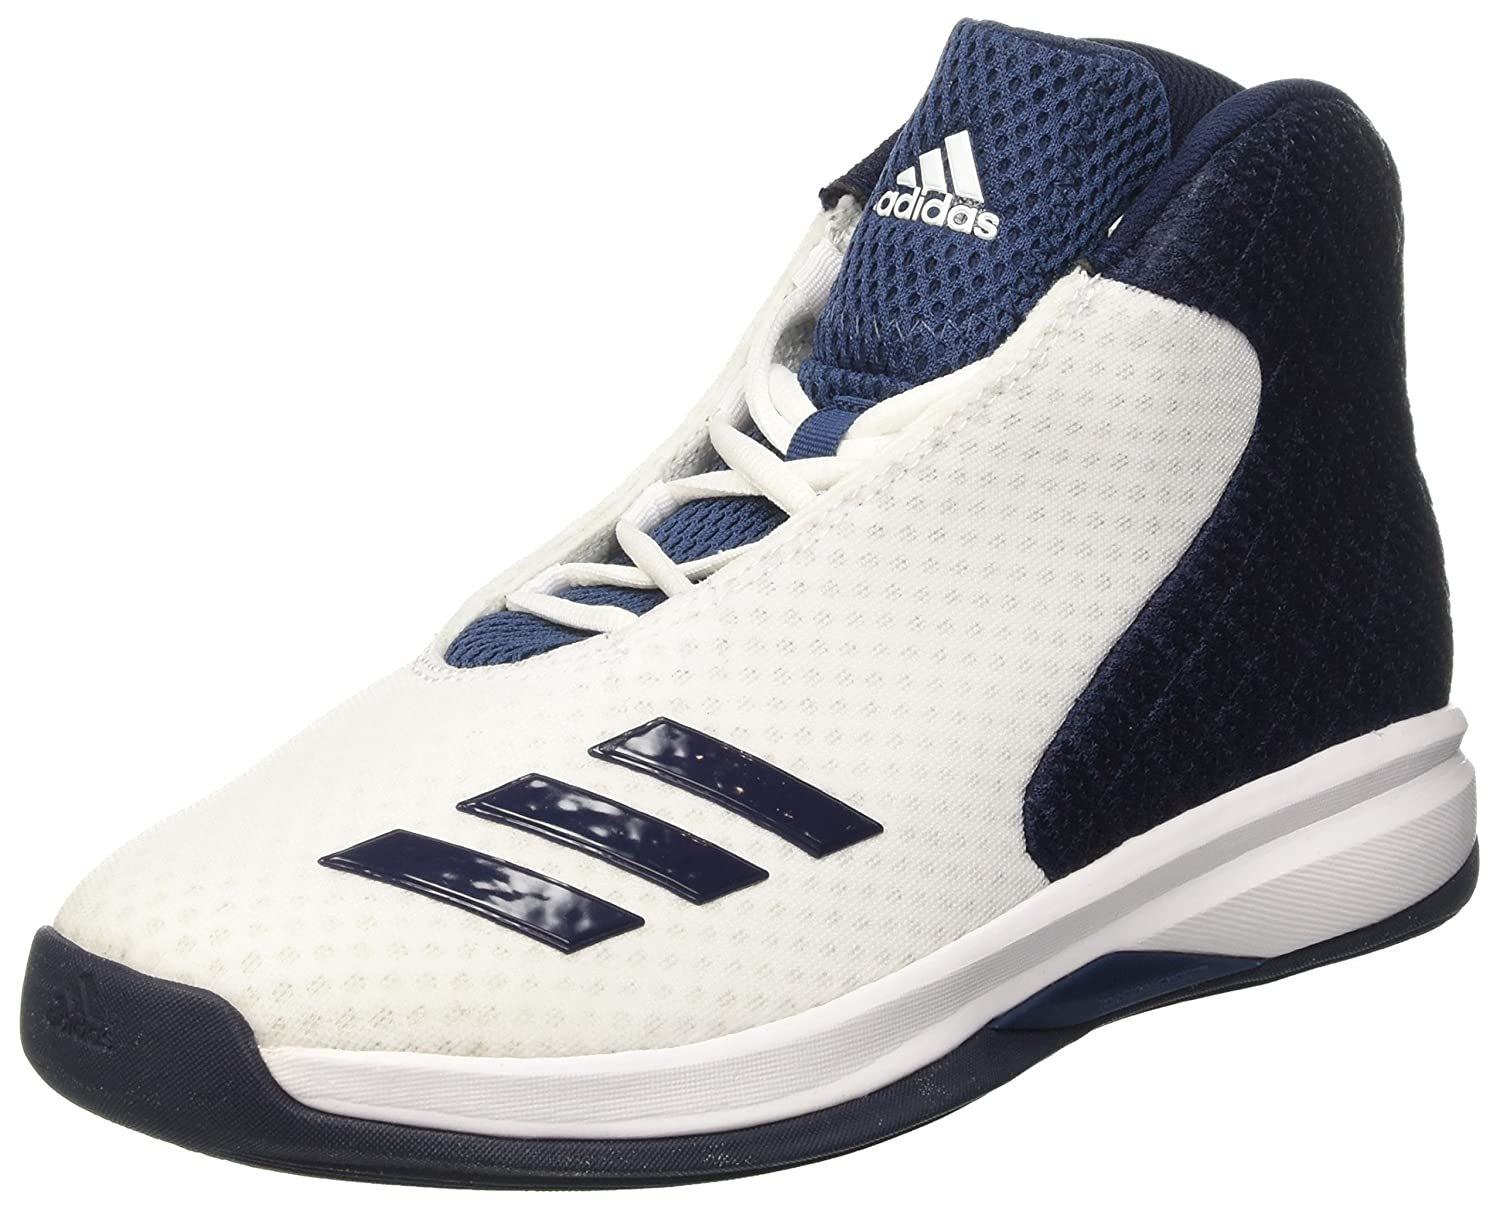 buy popular 99137 7287f ... adidas Mens Court Fury 2016 Basketball Shoes Amazon.co.uk Shoes Bags  classic sneaker ...